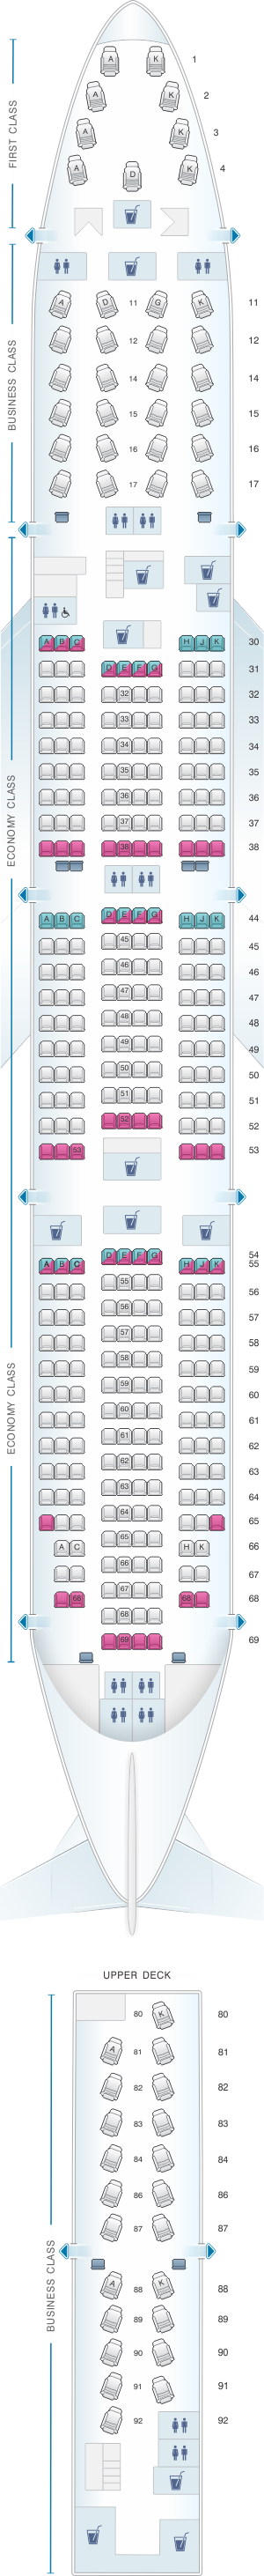 Seat map for Cathay Pacific Airways Boeing B747 400 (74A)